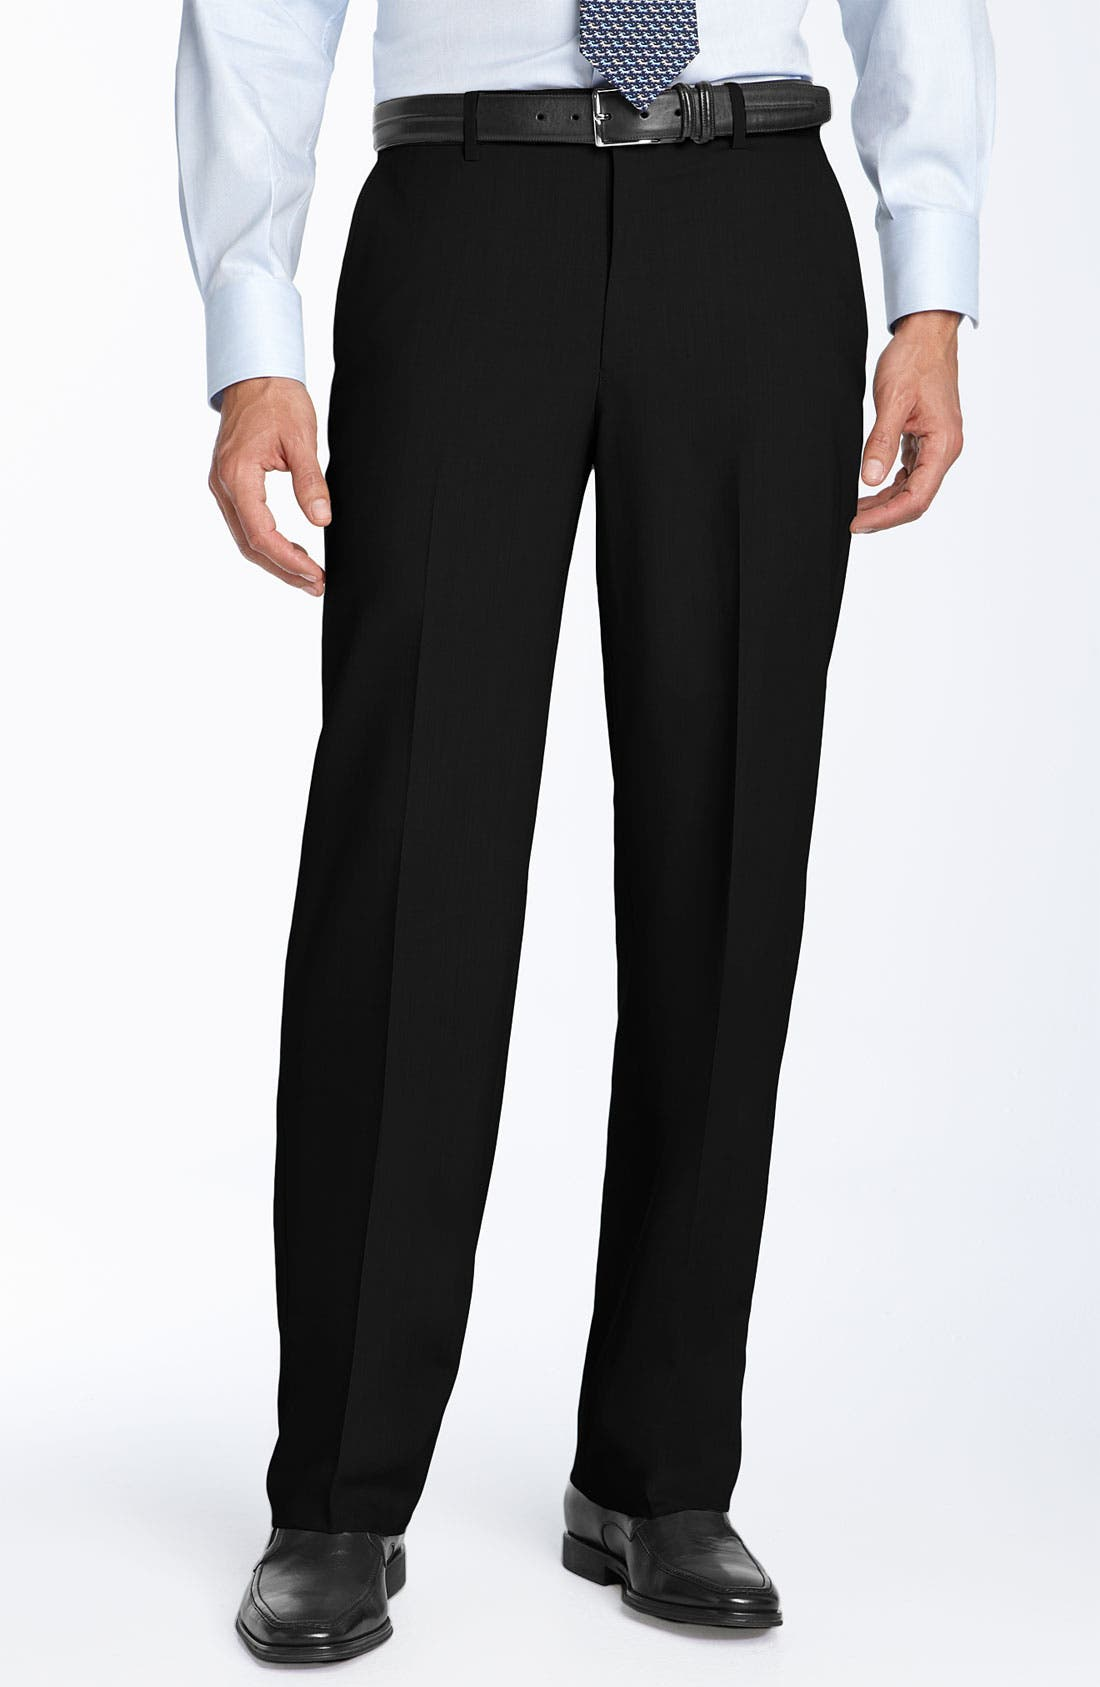 Alternate Image 1 Selected - Ballin Stain Resistant Flat Front Trousers